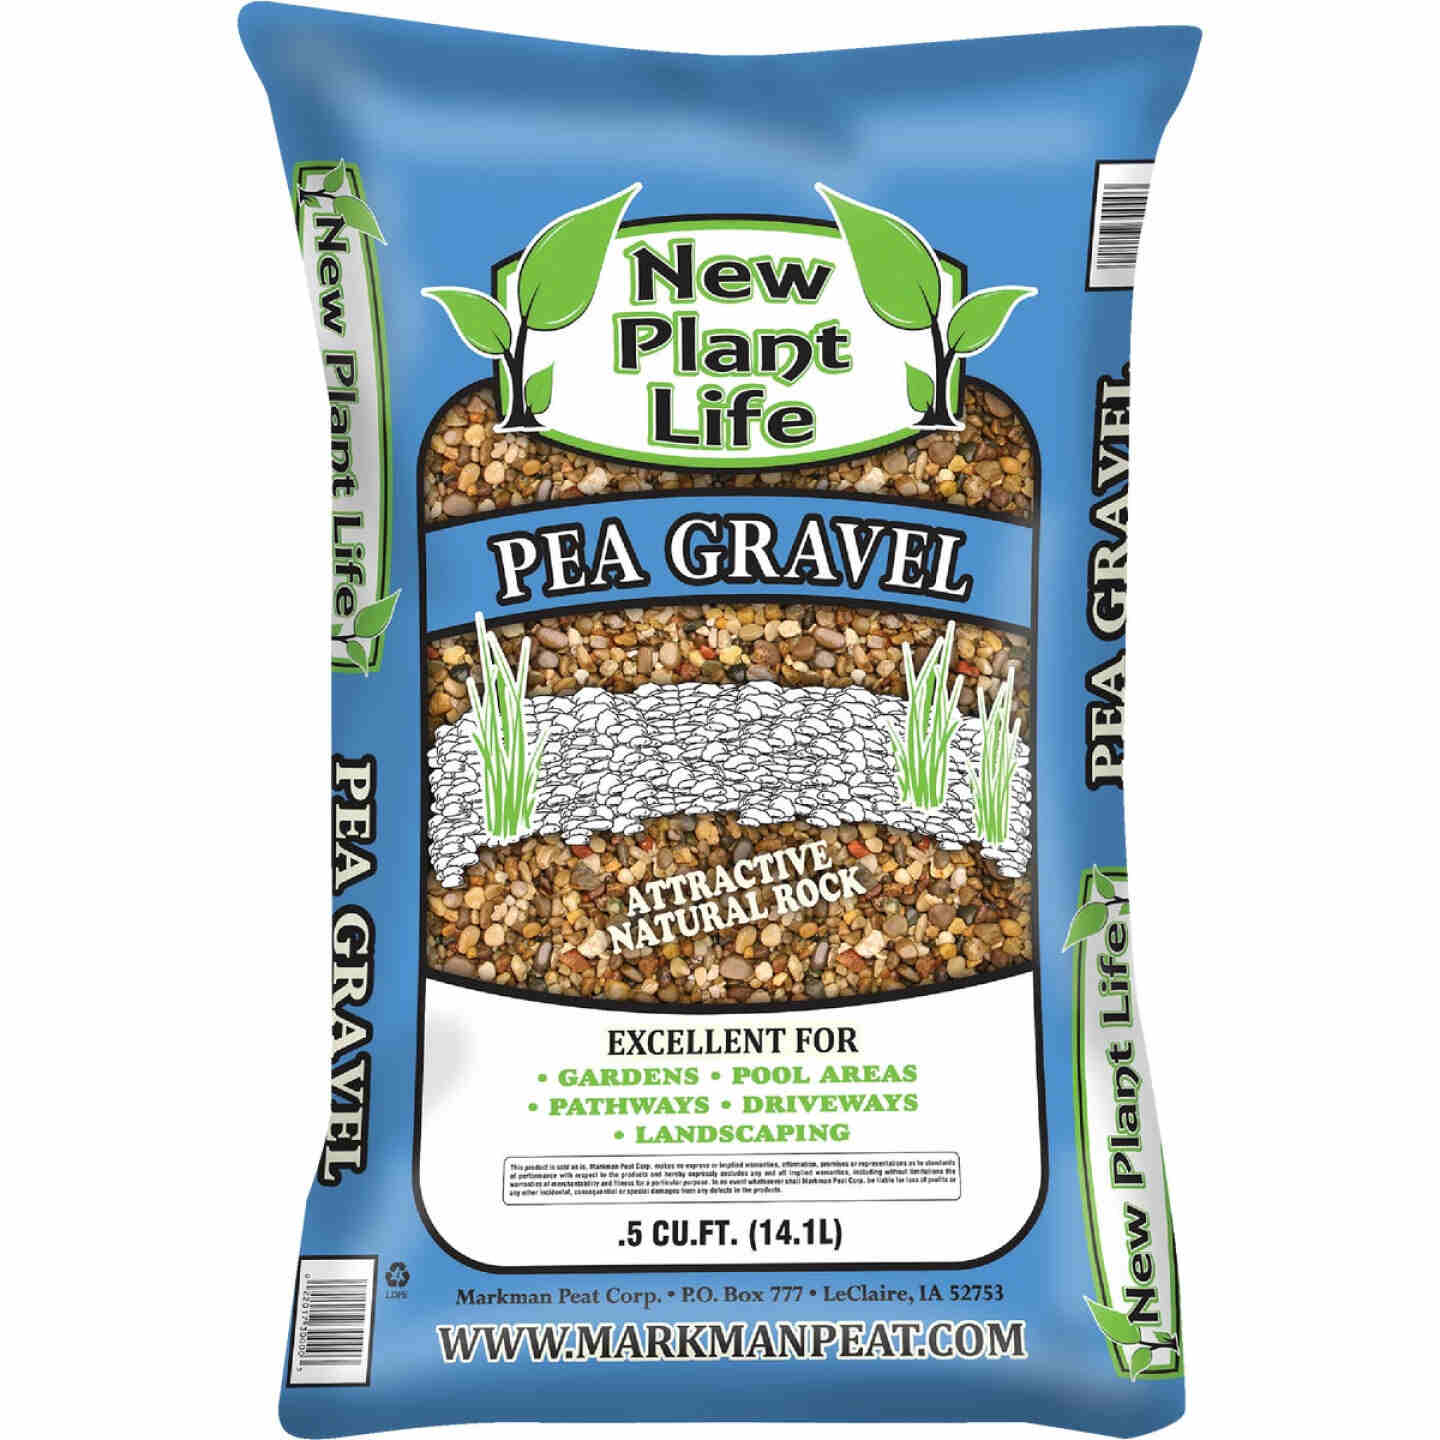 New Plant Life 0.5 Cu. Ft. Pea Gravel Image 1